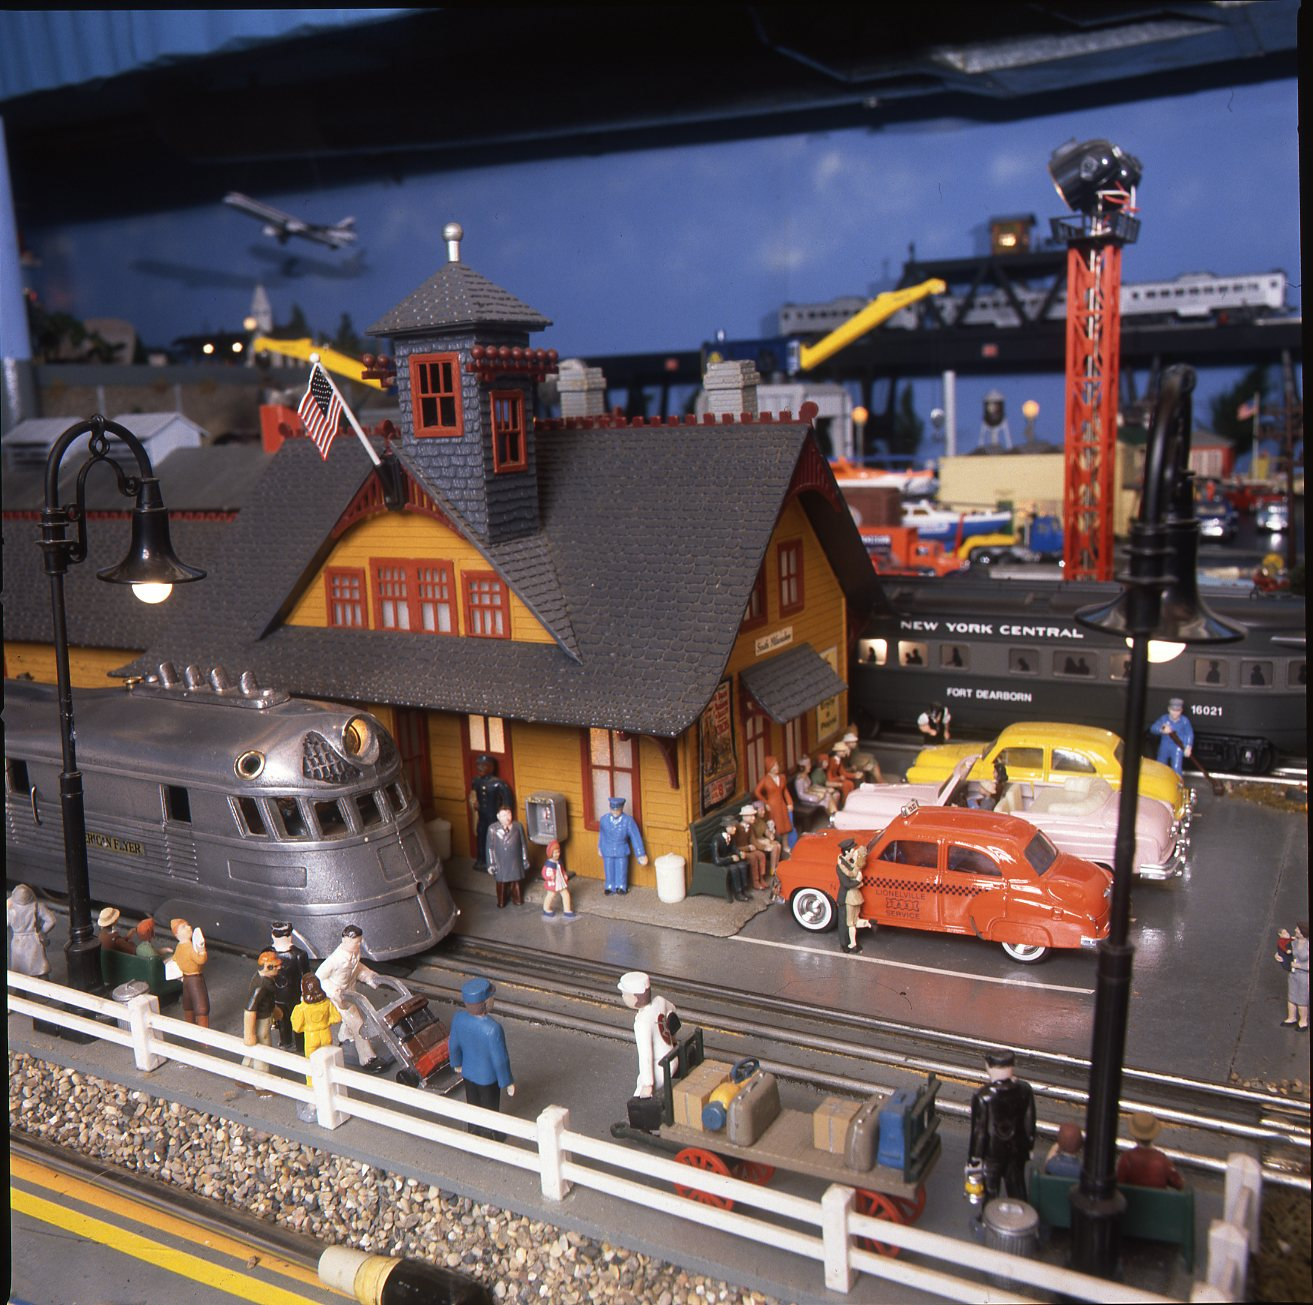 A busy station scene on an O gauge layout.